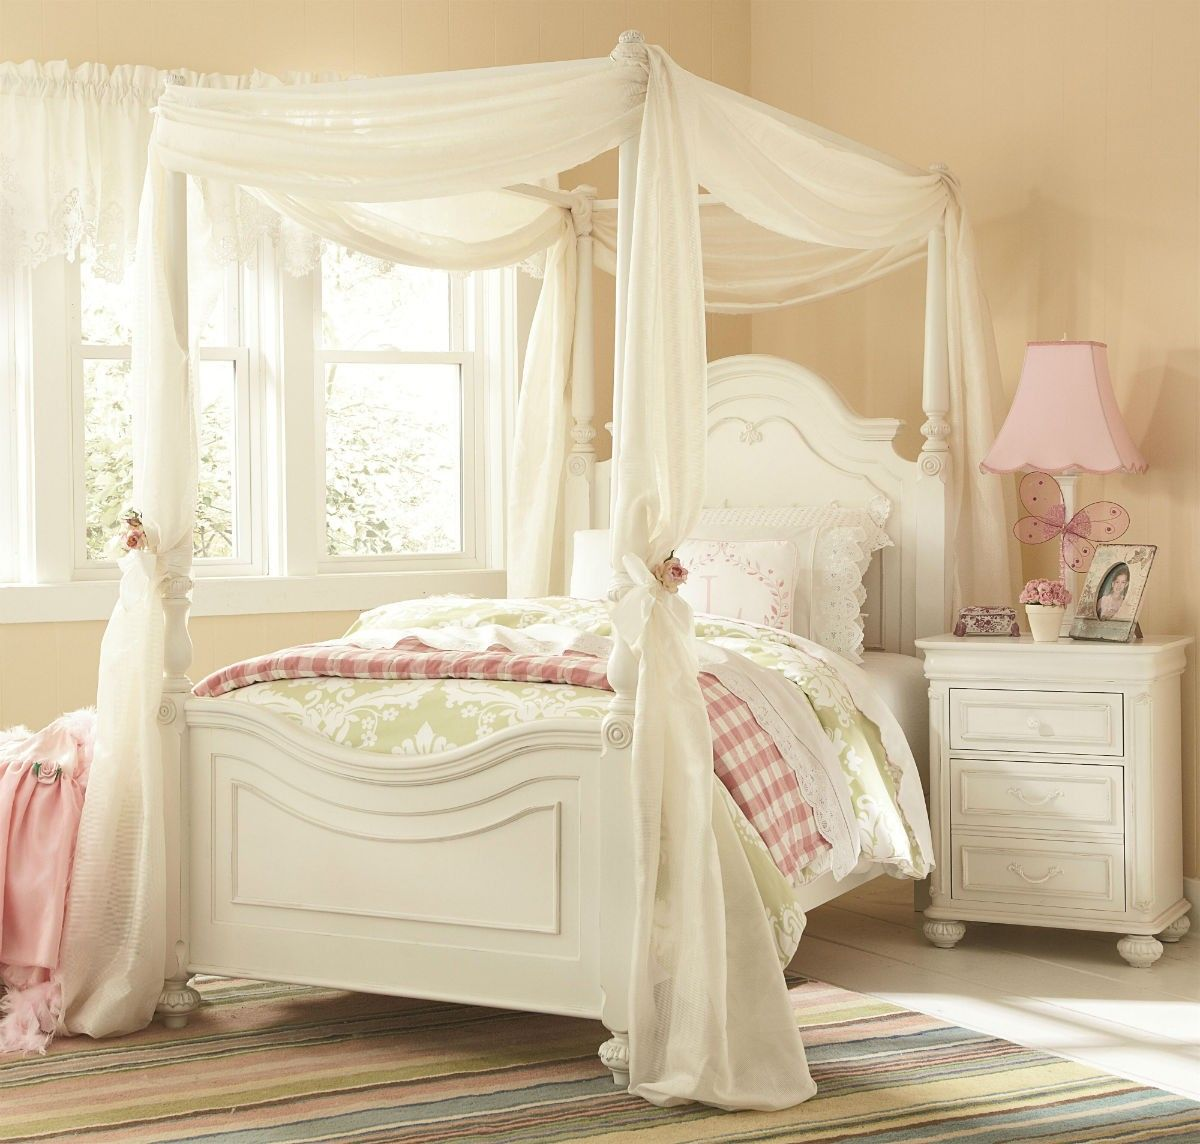 Bed canopy ideas - 19 Fabulous Canopy Bed Designs For Your Little Princess